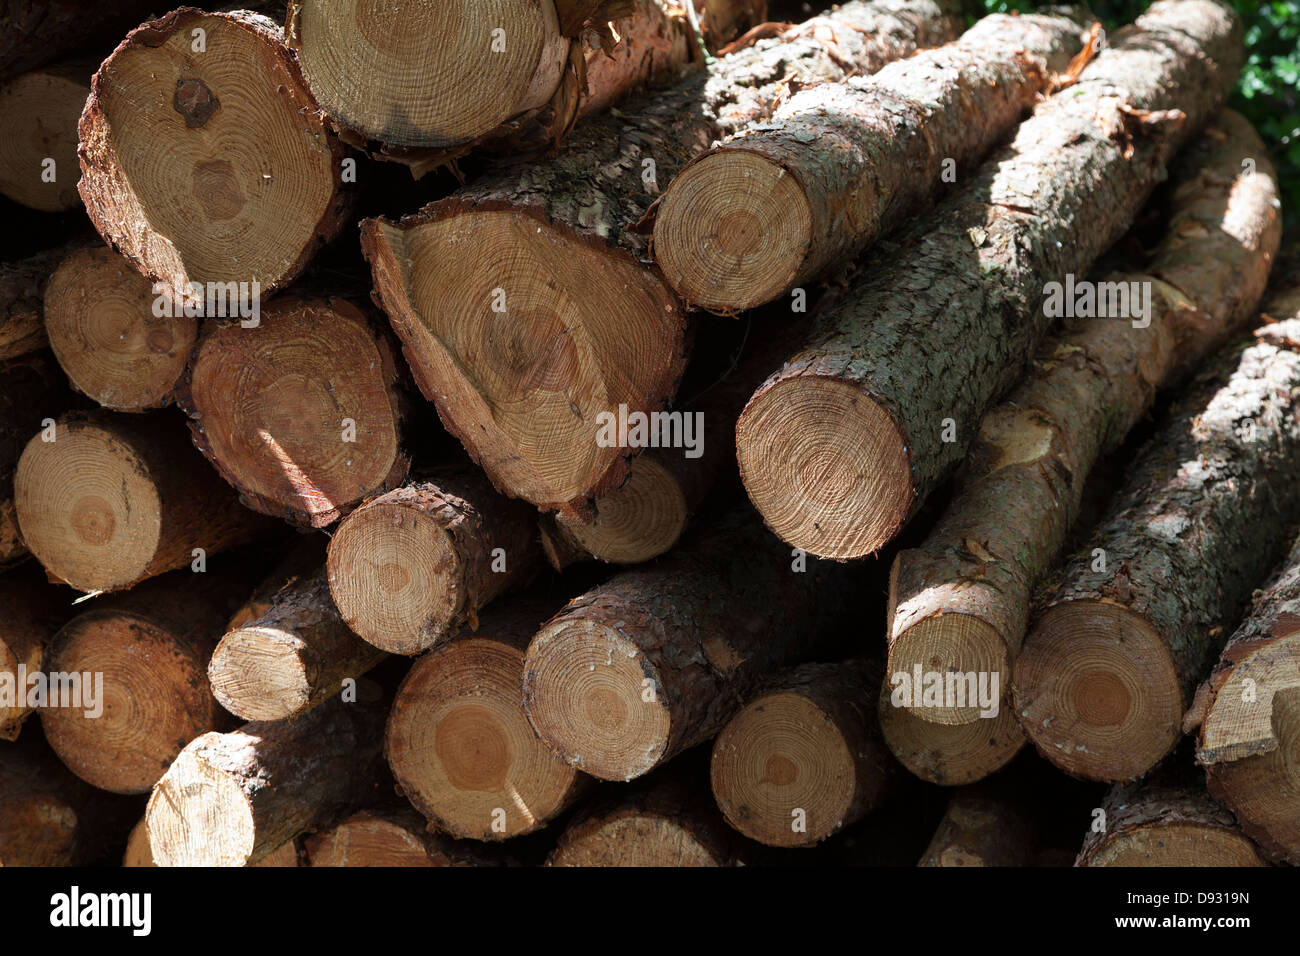 Pile of recently cut pine ( pinus sylvestris ) logs - Stock Image